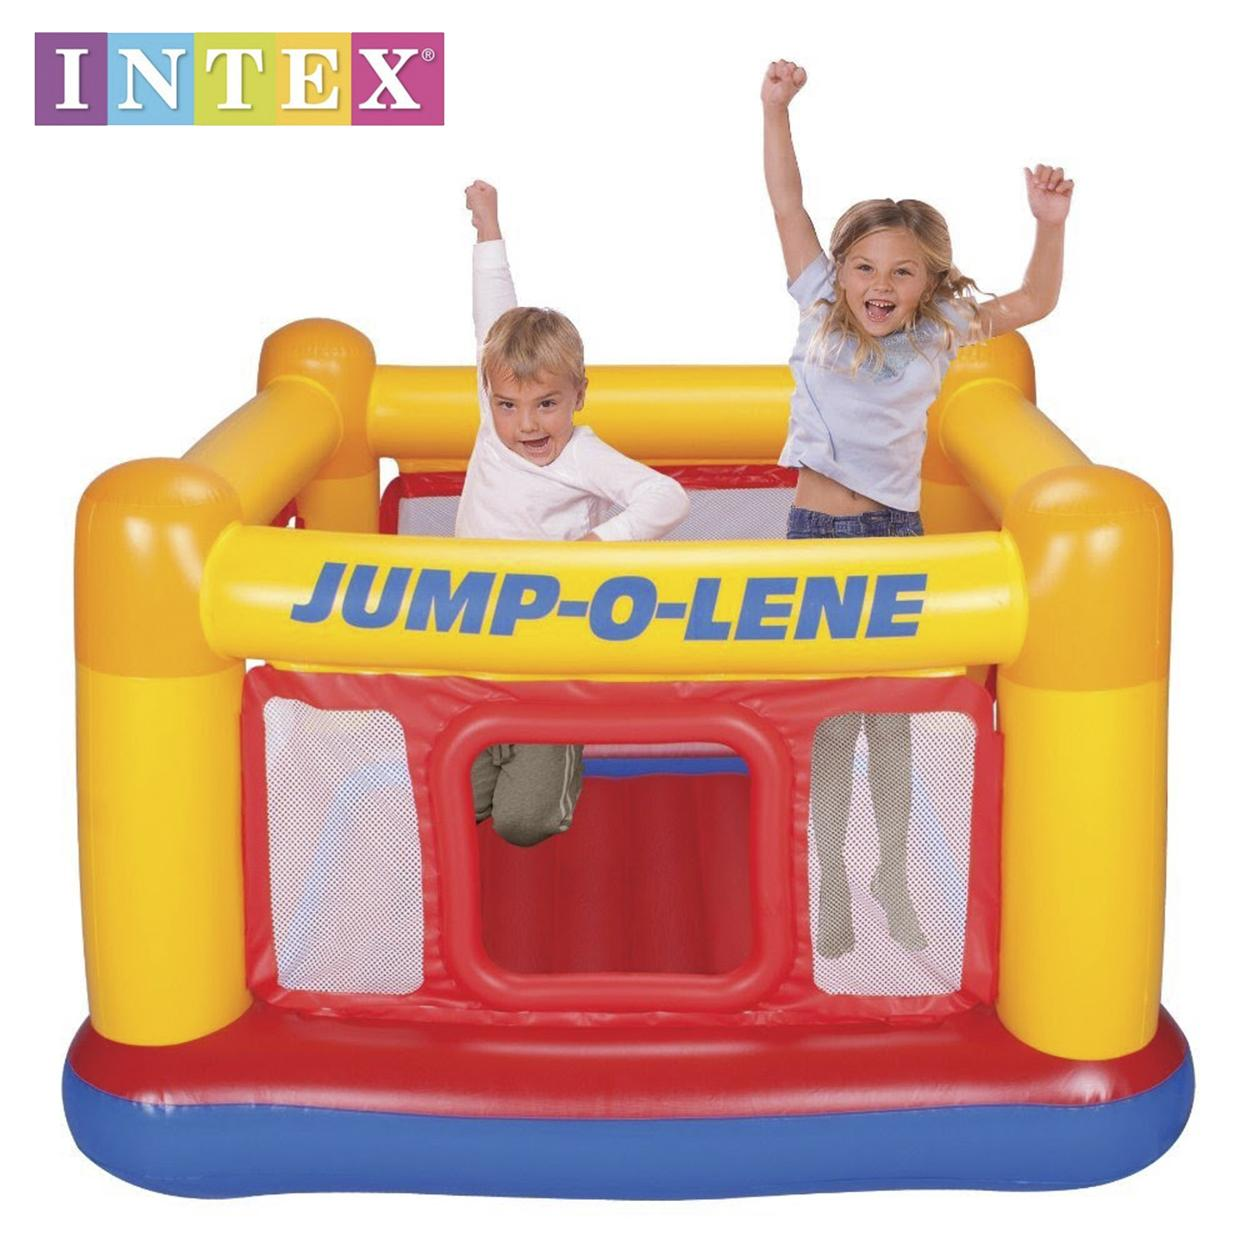 283017711 Bouncer Toys for sale - Inflatable Toys online brands